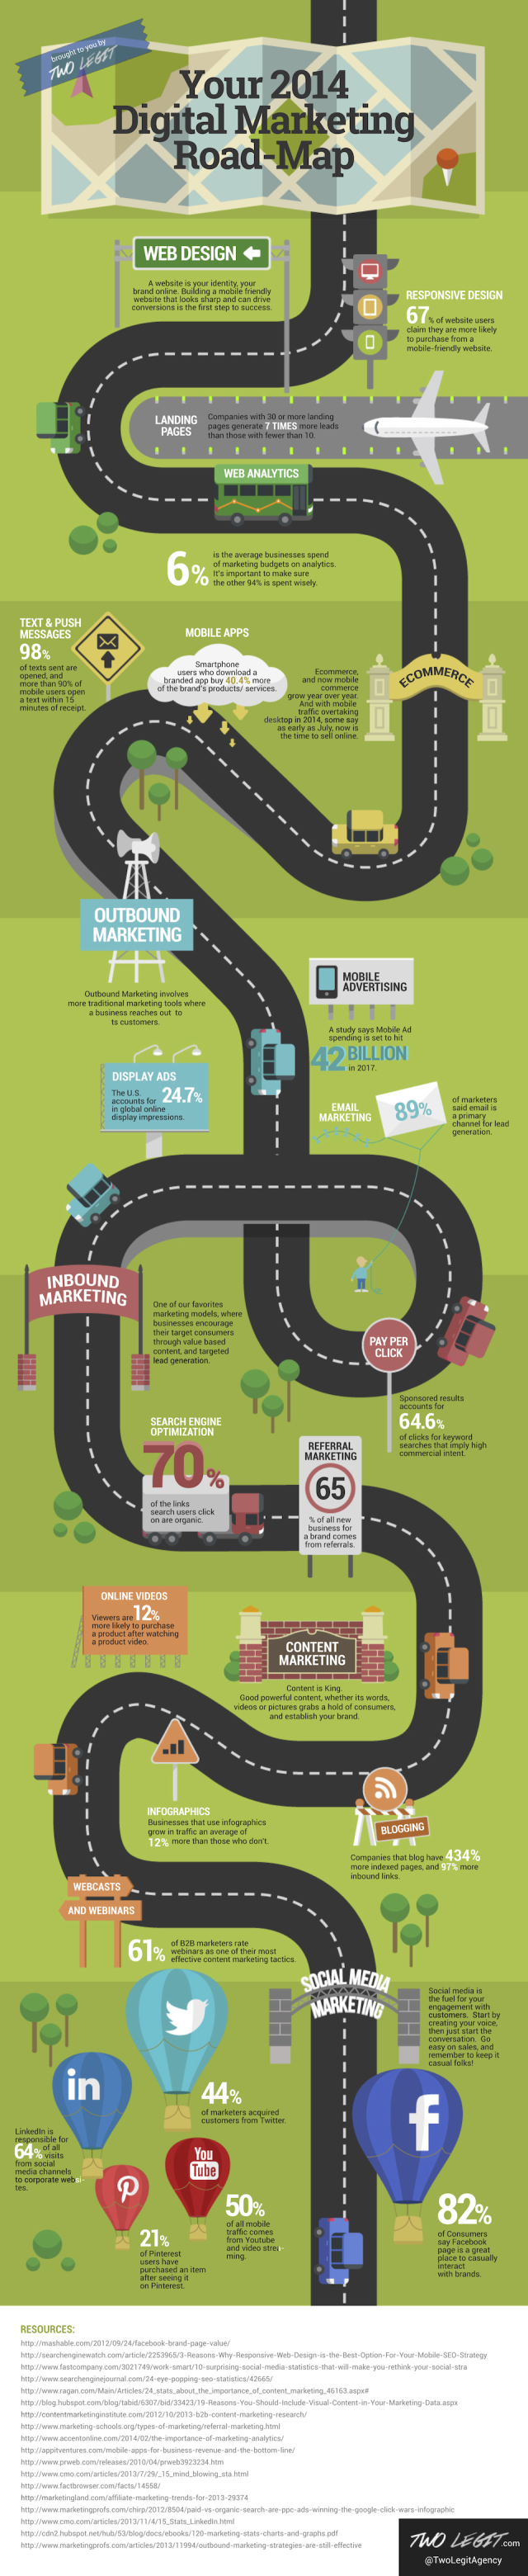 2014-digital-marketing-roadmap-640x3121